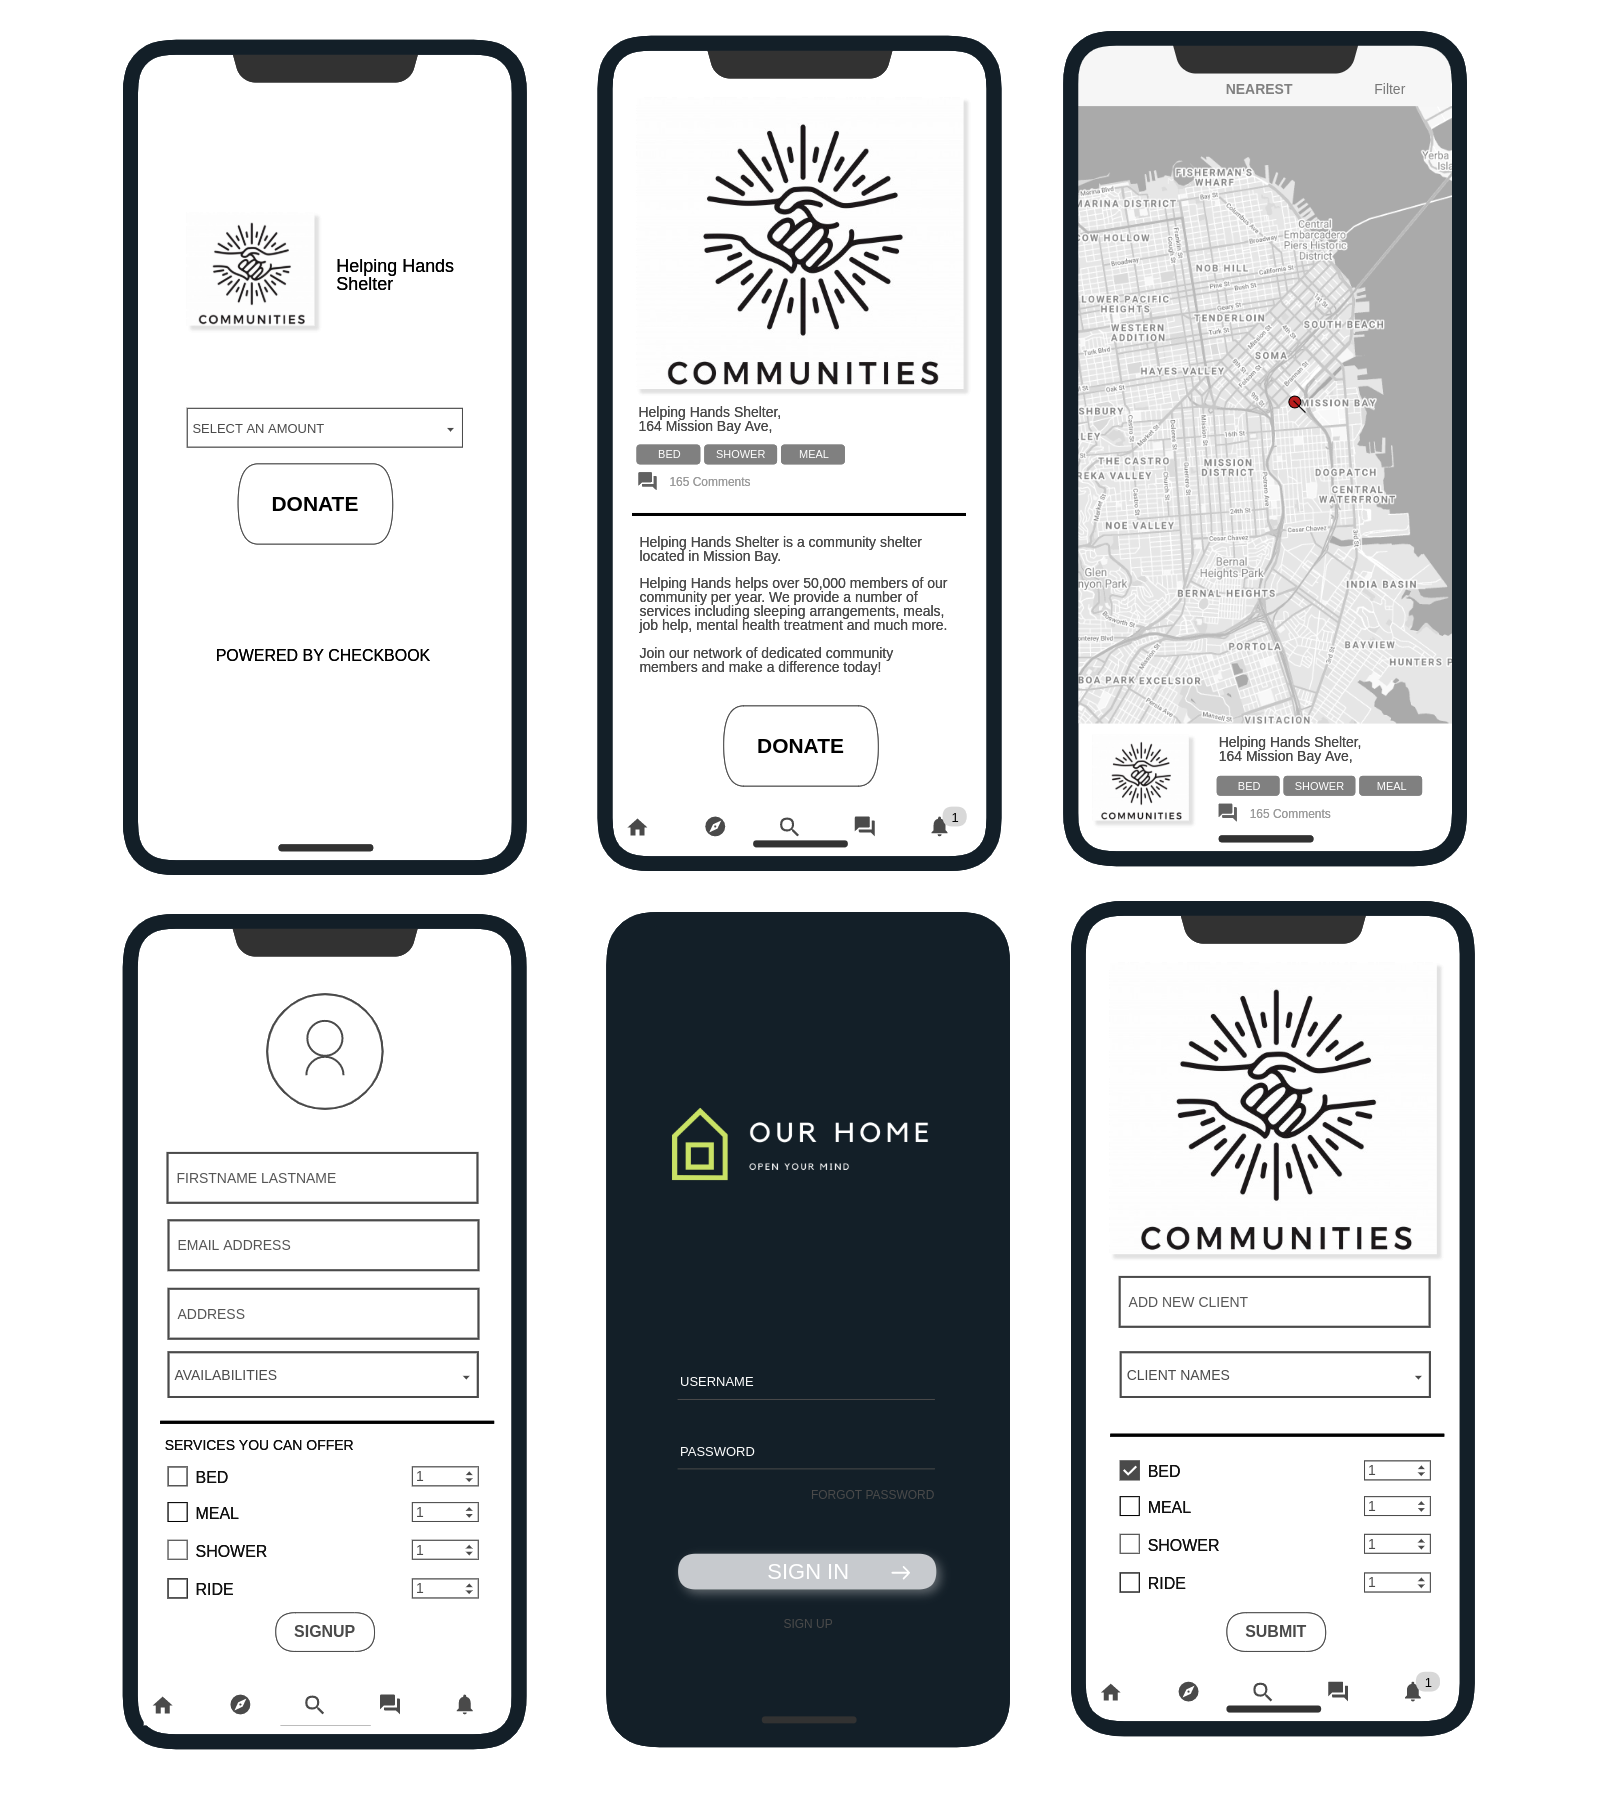 Different screens from Our Home, including a map, client information page, etc.